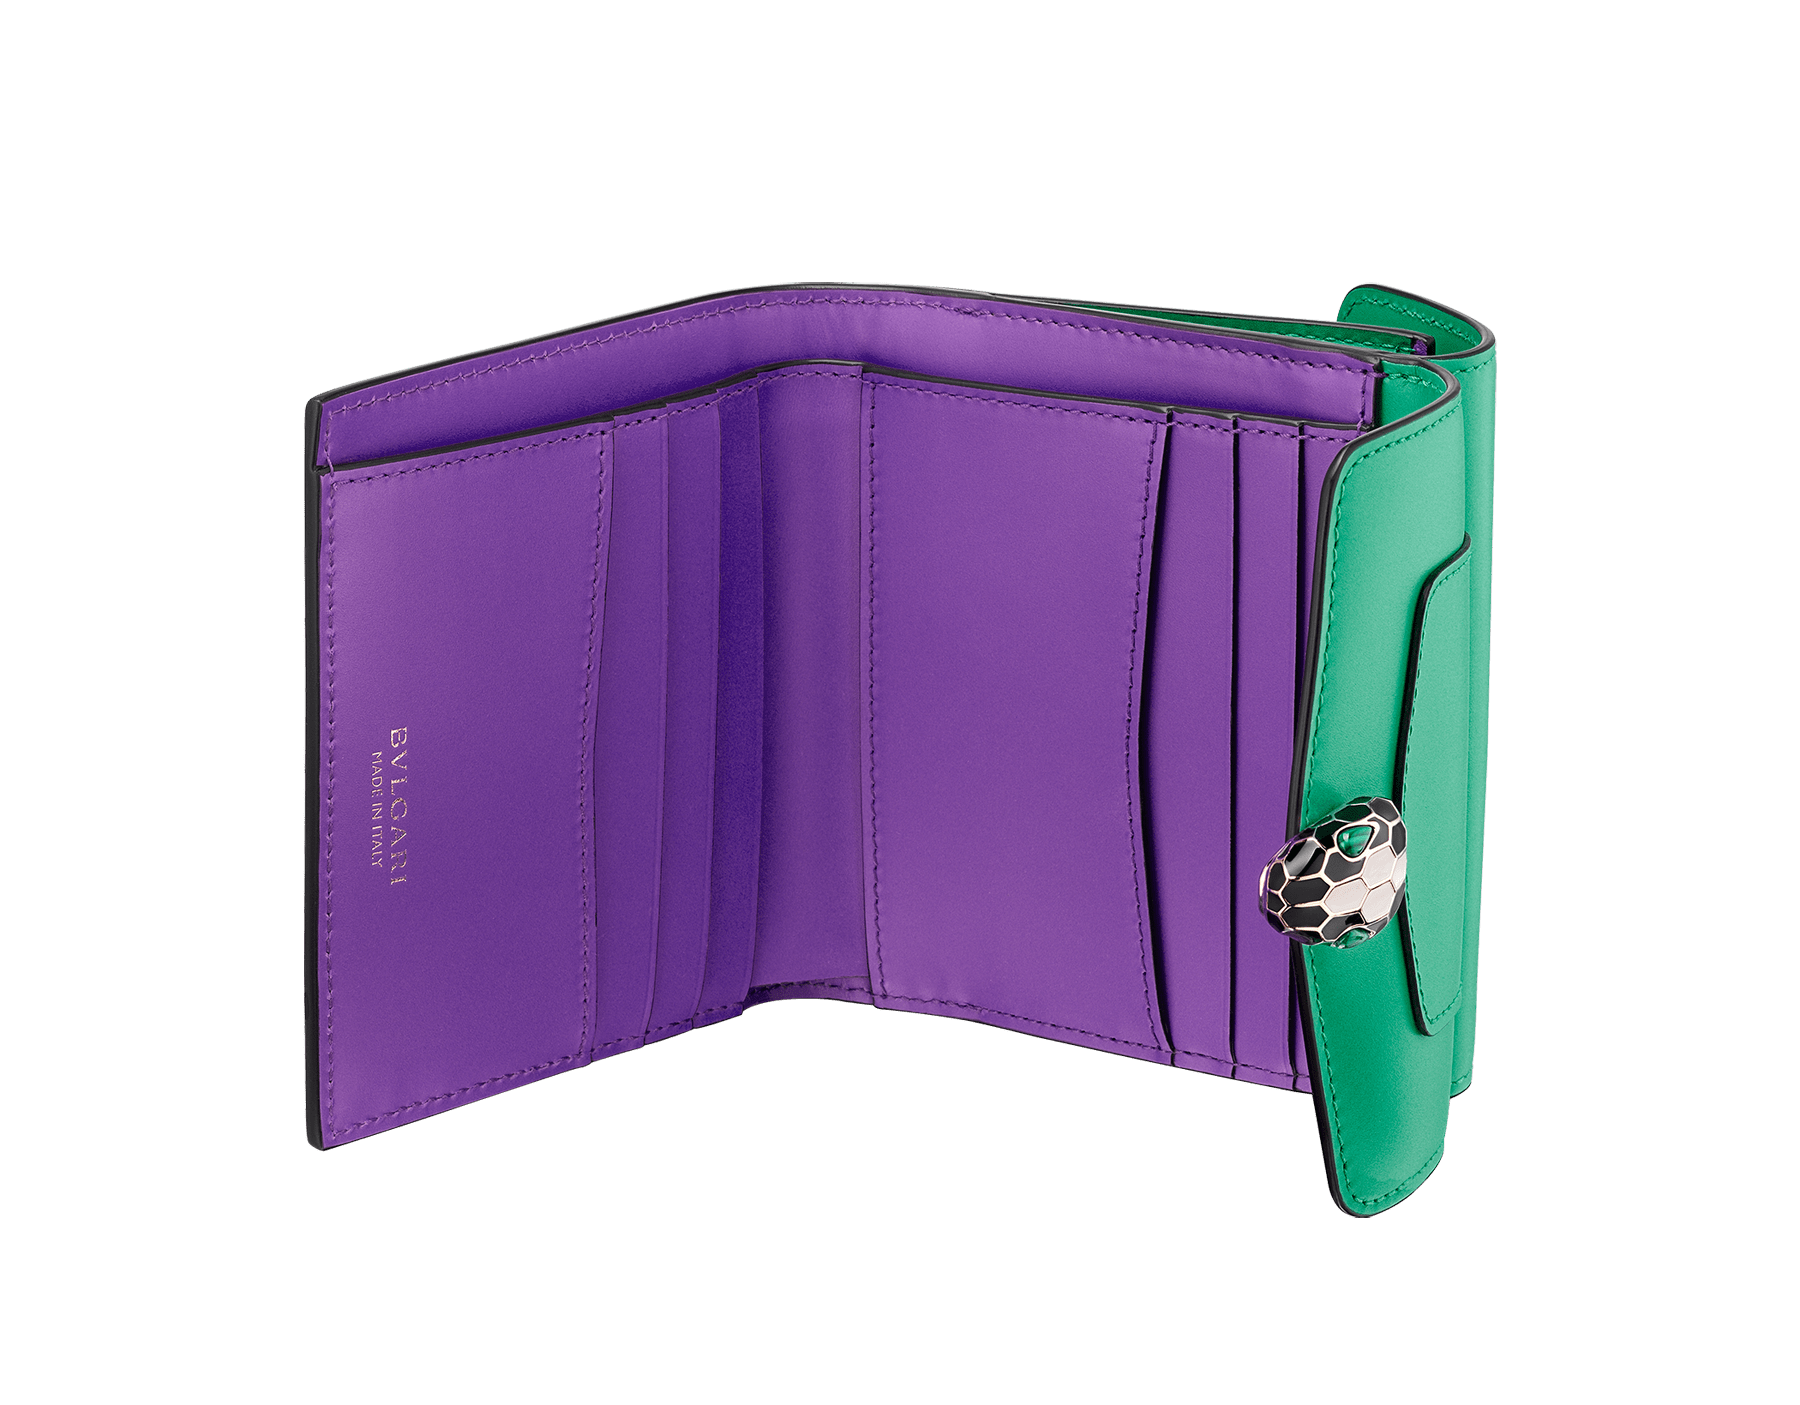 Serpenti Forever square compact wallet in daisy topaz and crystal rose calf leather. Iconic snakehead stud closure in black and white agate enamel, with green malachite eyes. SEA-WLT-COMPACT-3Fa image 2